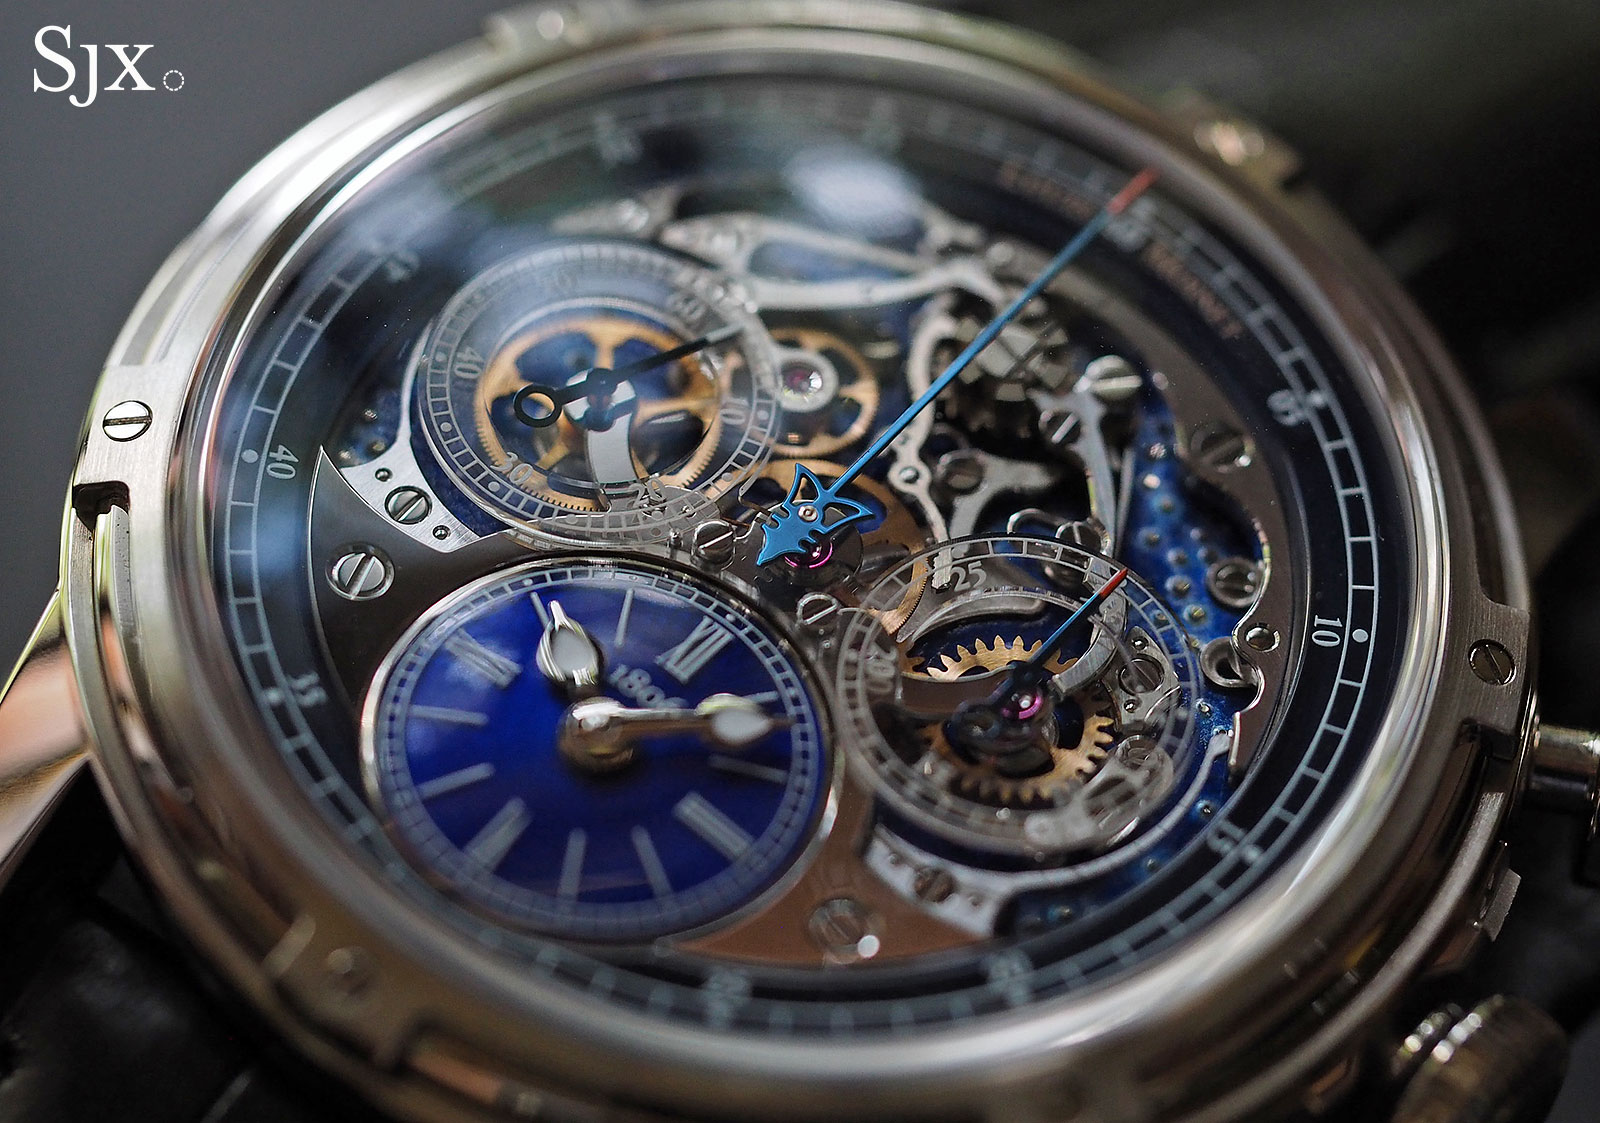 Louis Moinet Memoris 200th Anniversary 1